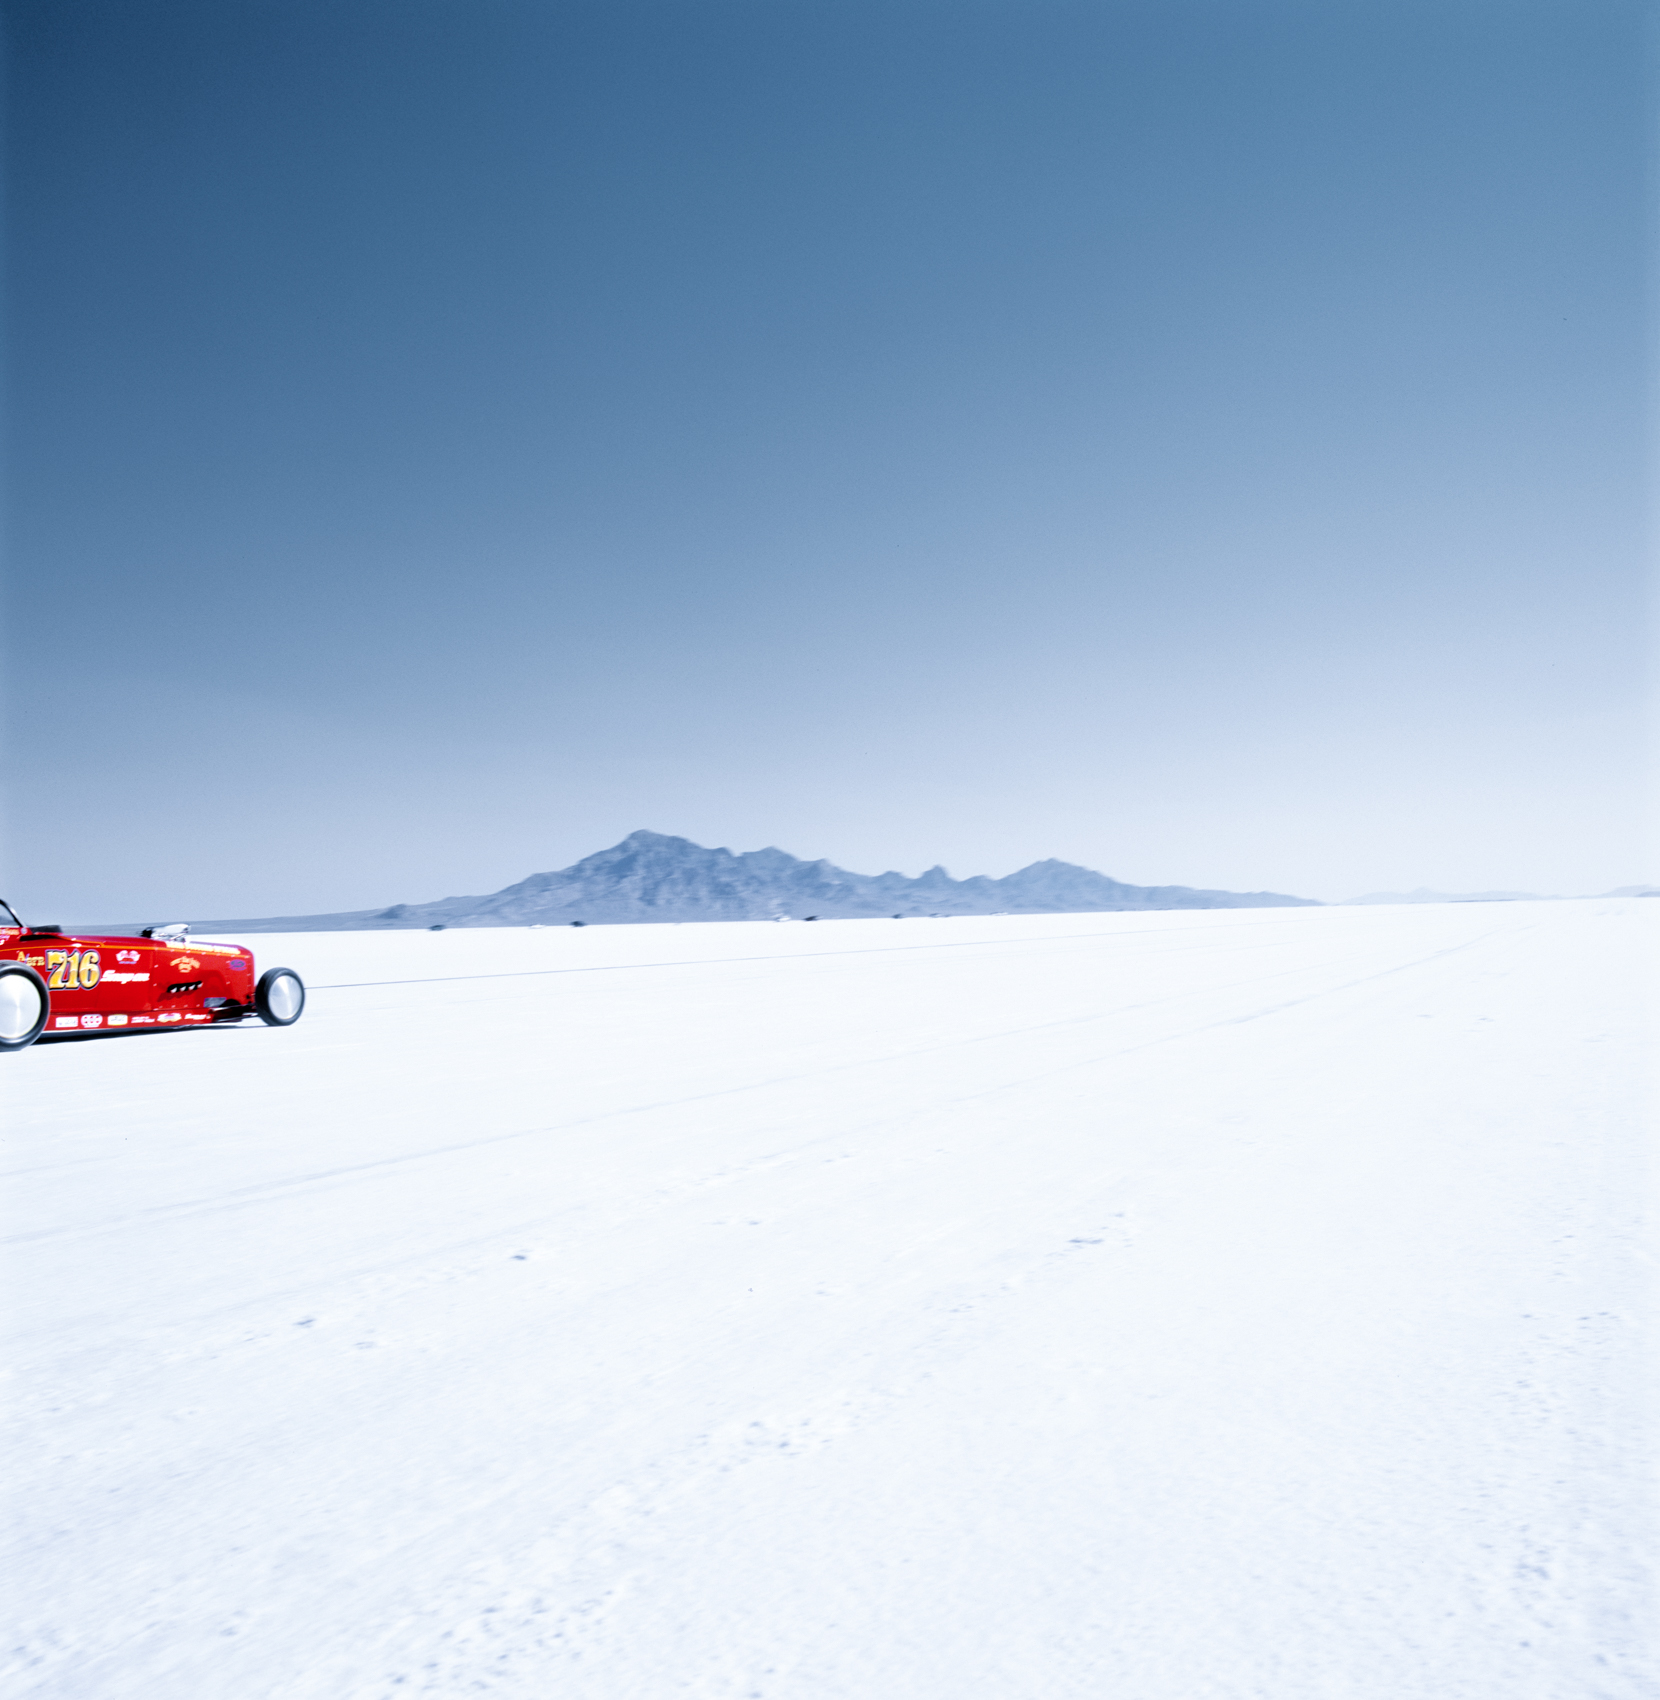 Road Trip - Cars Racing on the Salt Flats